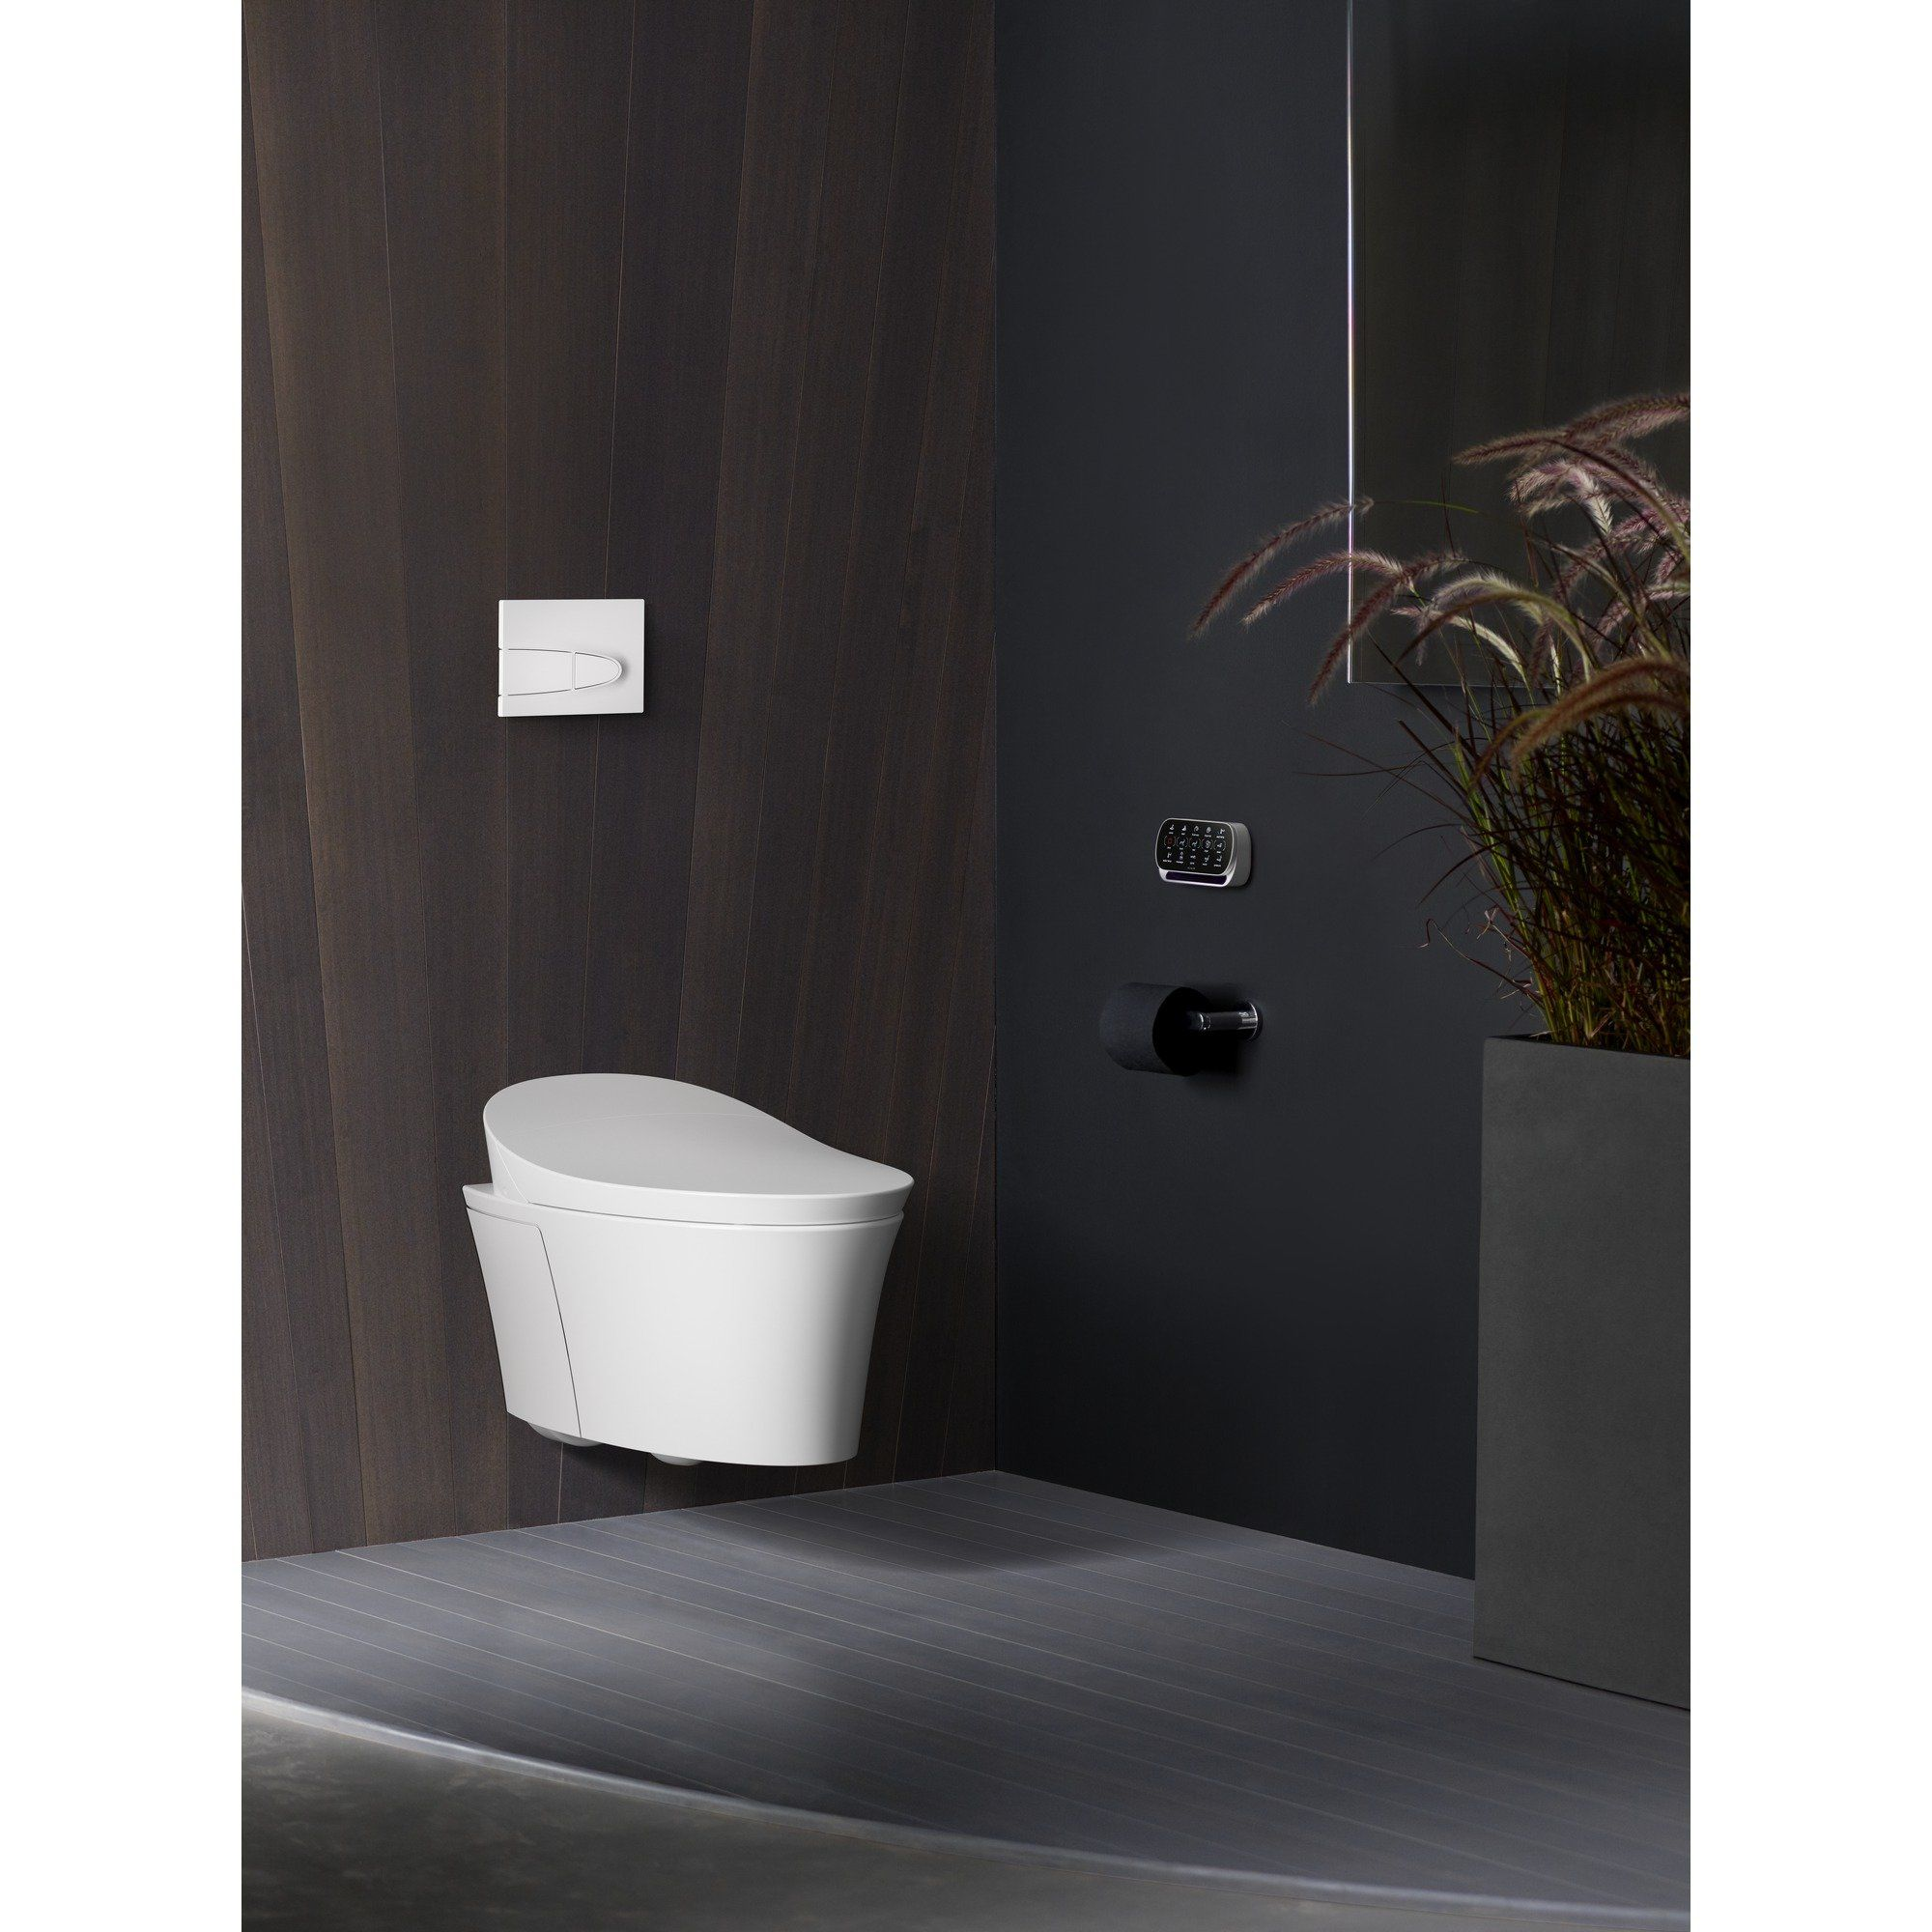 Kohler Veil Intelligent Wall Hung Toilet Here it is in a wall hung